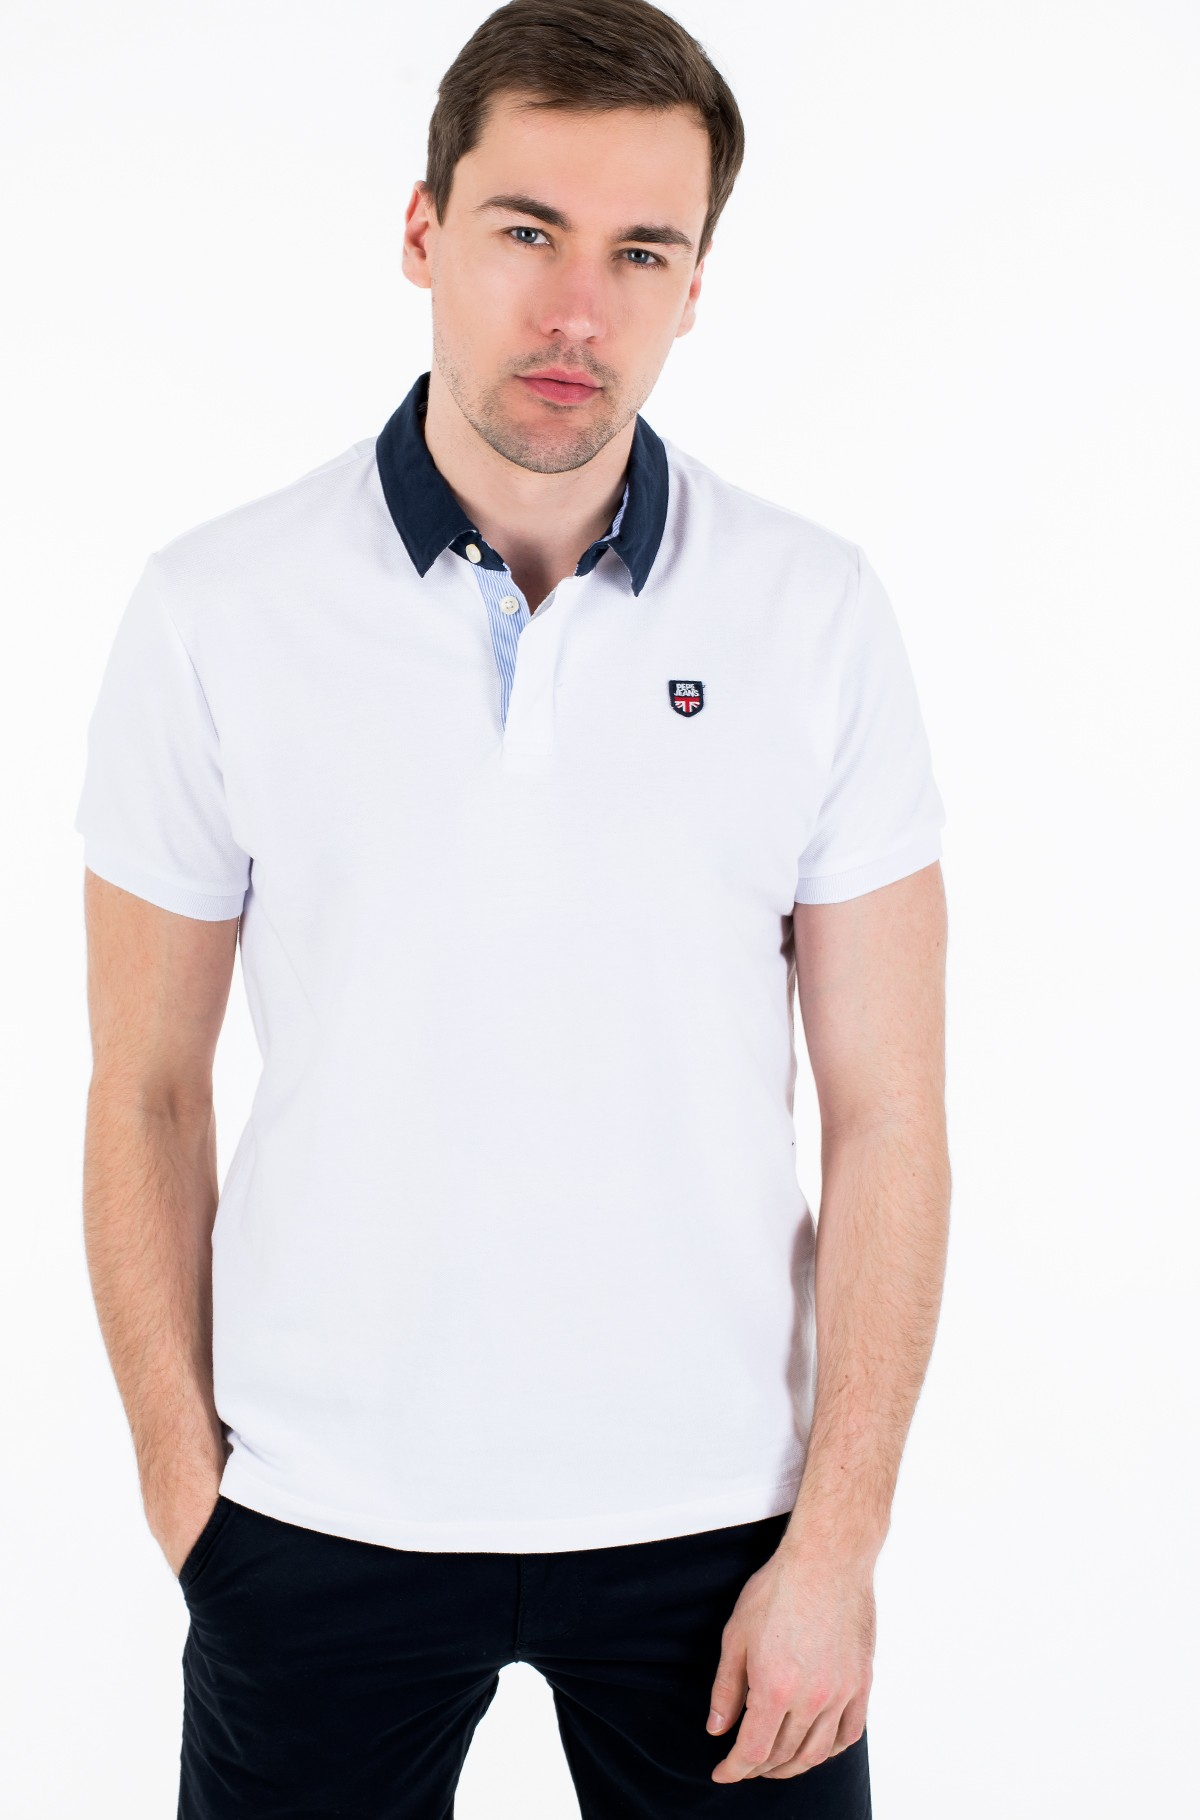 Polo LEVYCE/PM541424-full-1